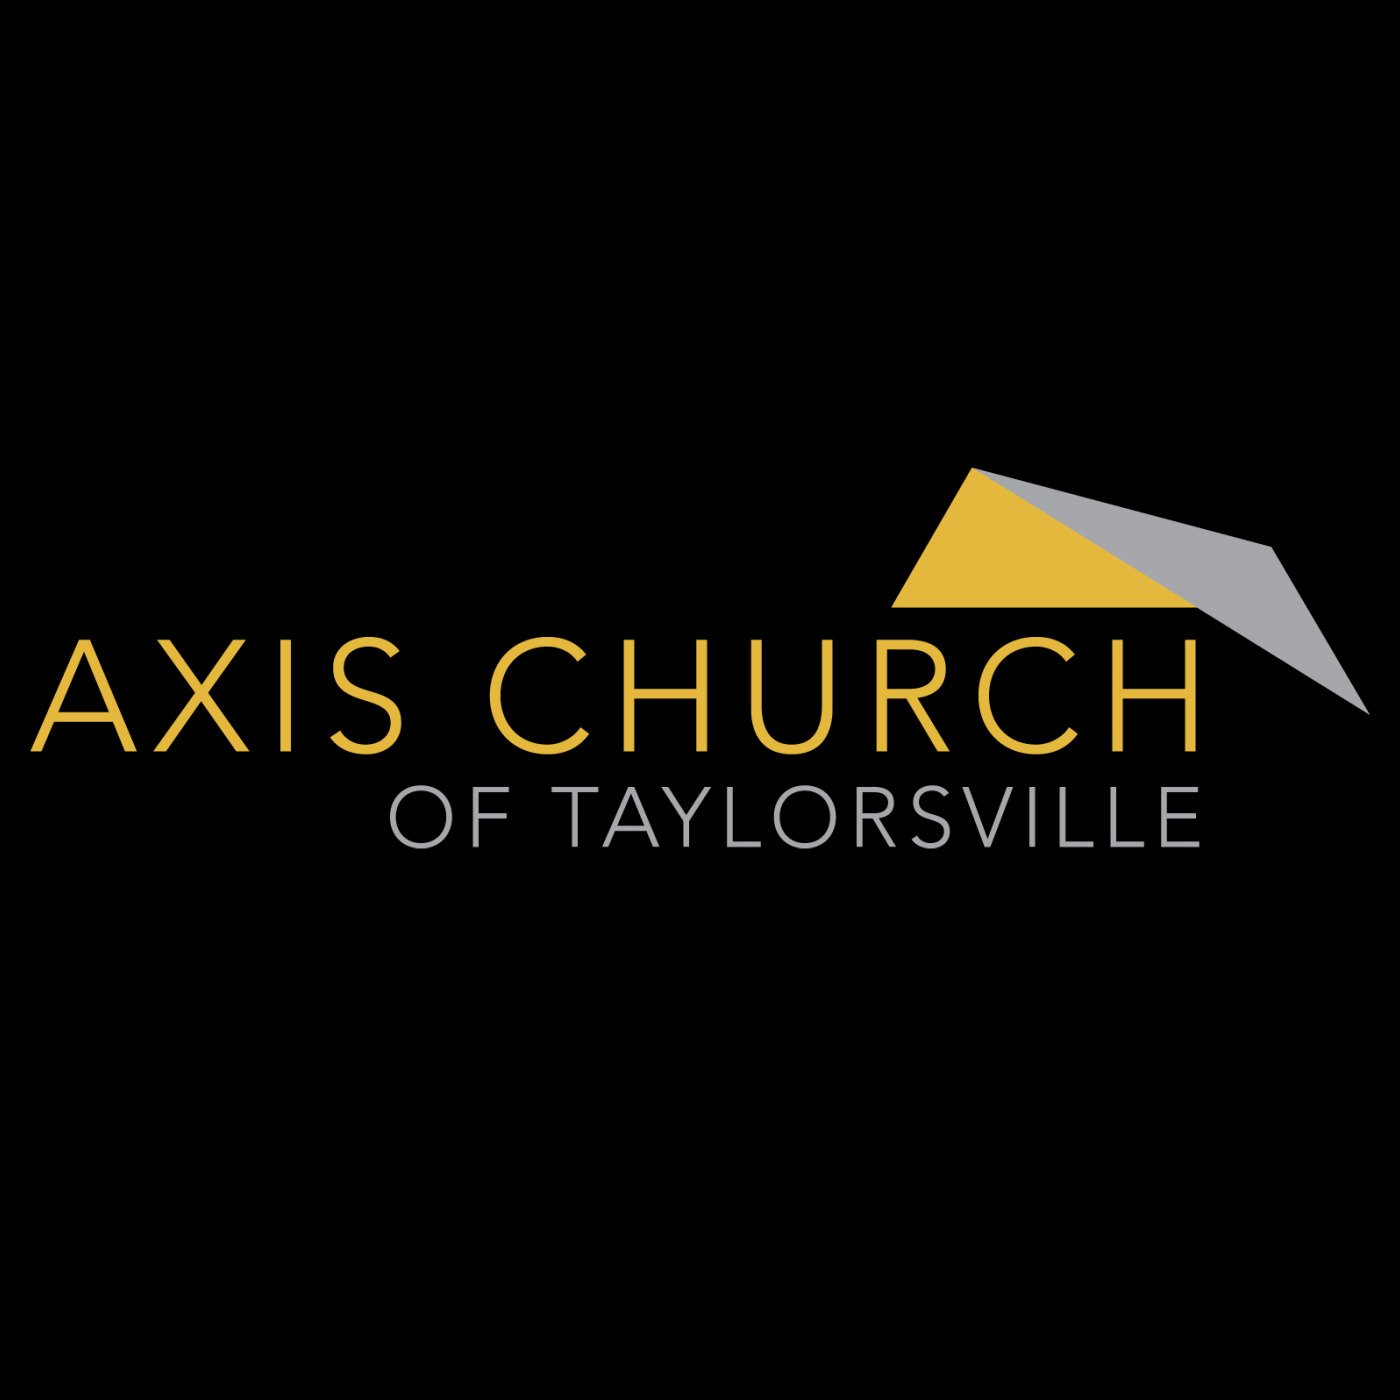 Axis Church of Taylorsville Sermon Audio